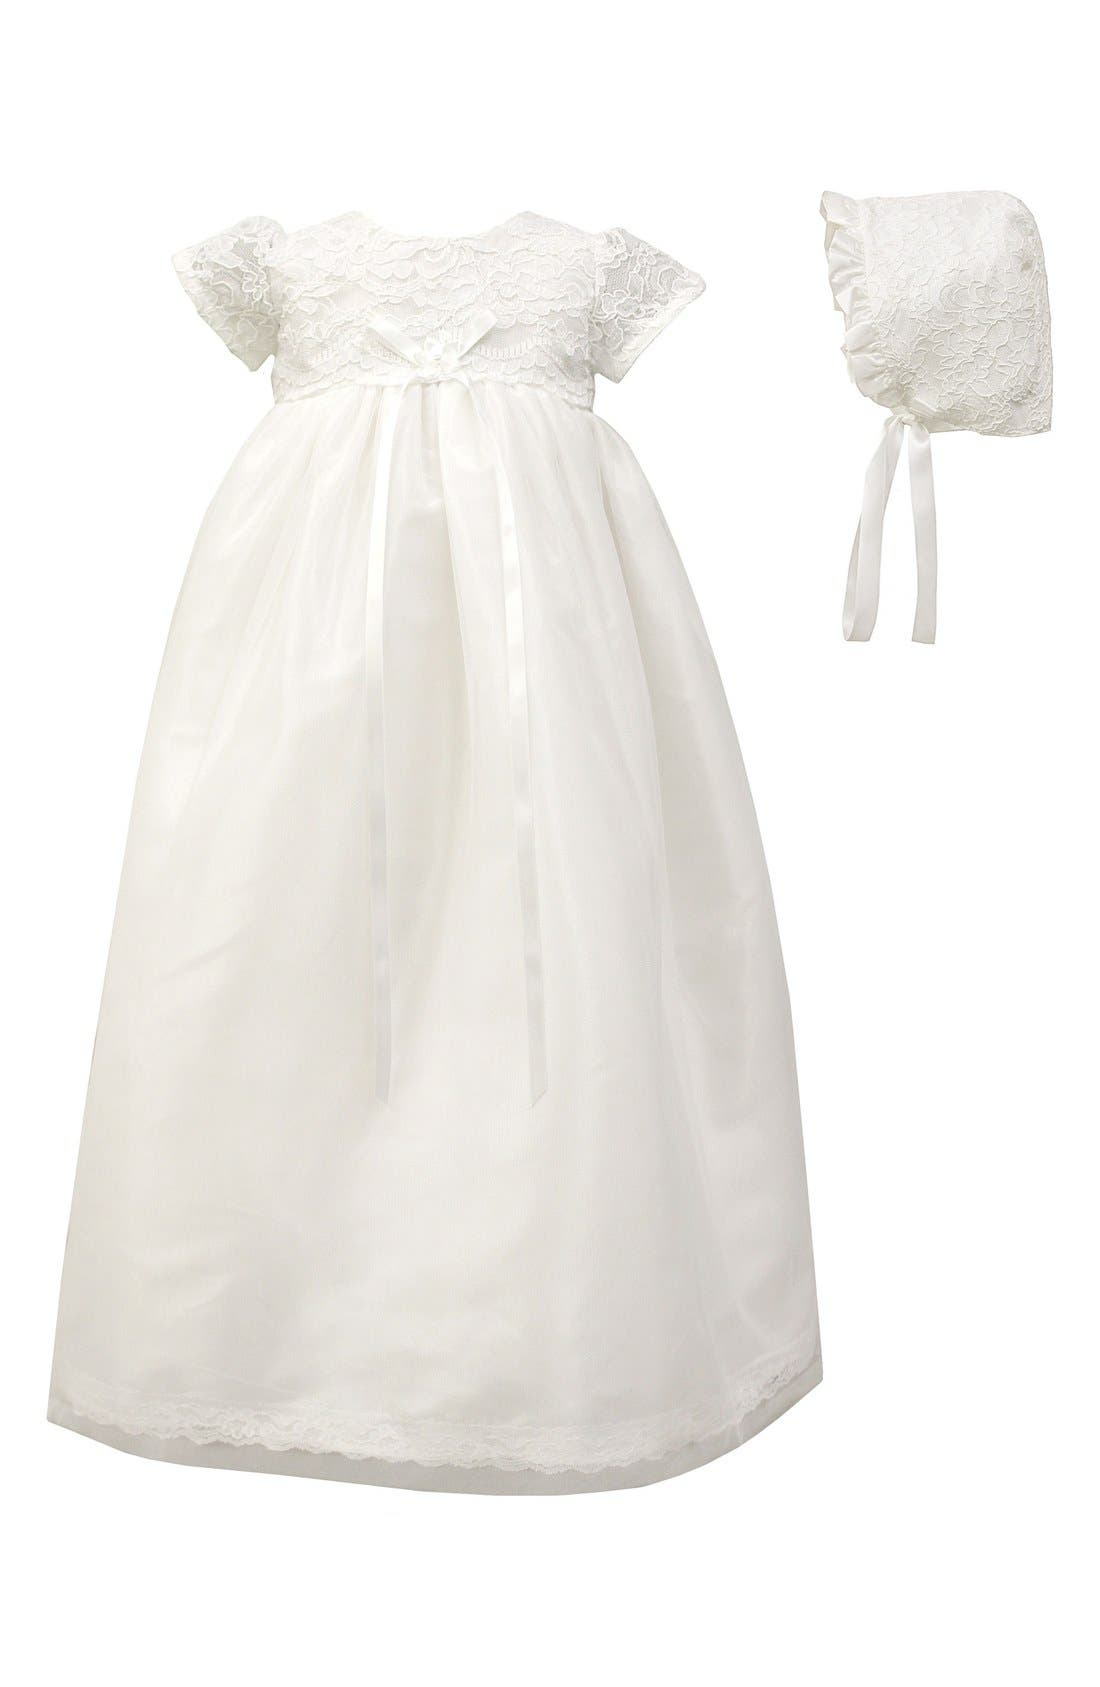 C.I. Castro & Co. Scalloped Lace Christening Gown & Bonnet Set (Baby)